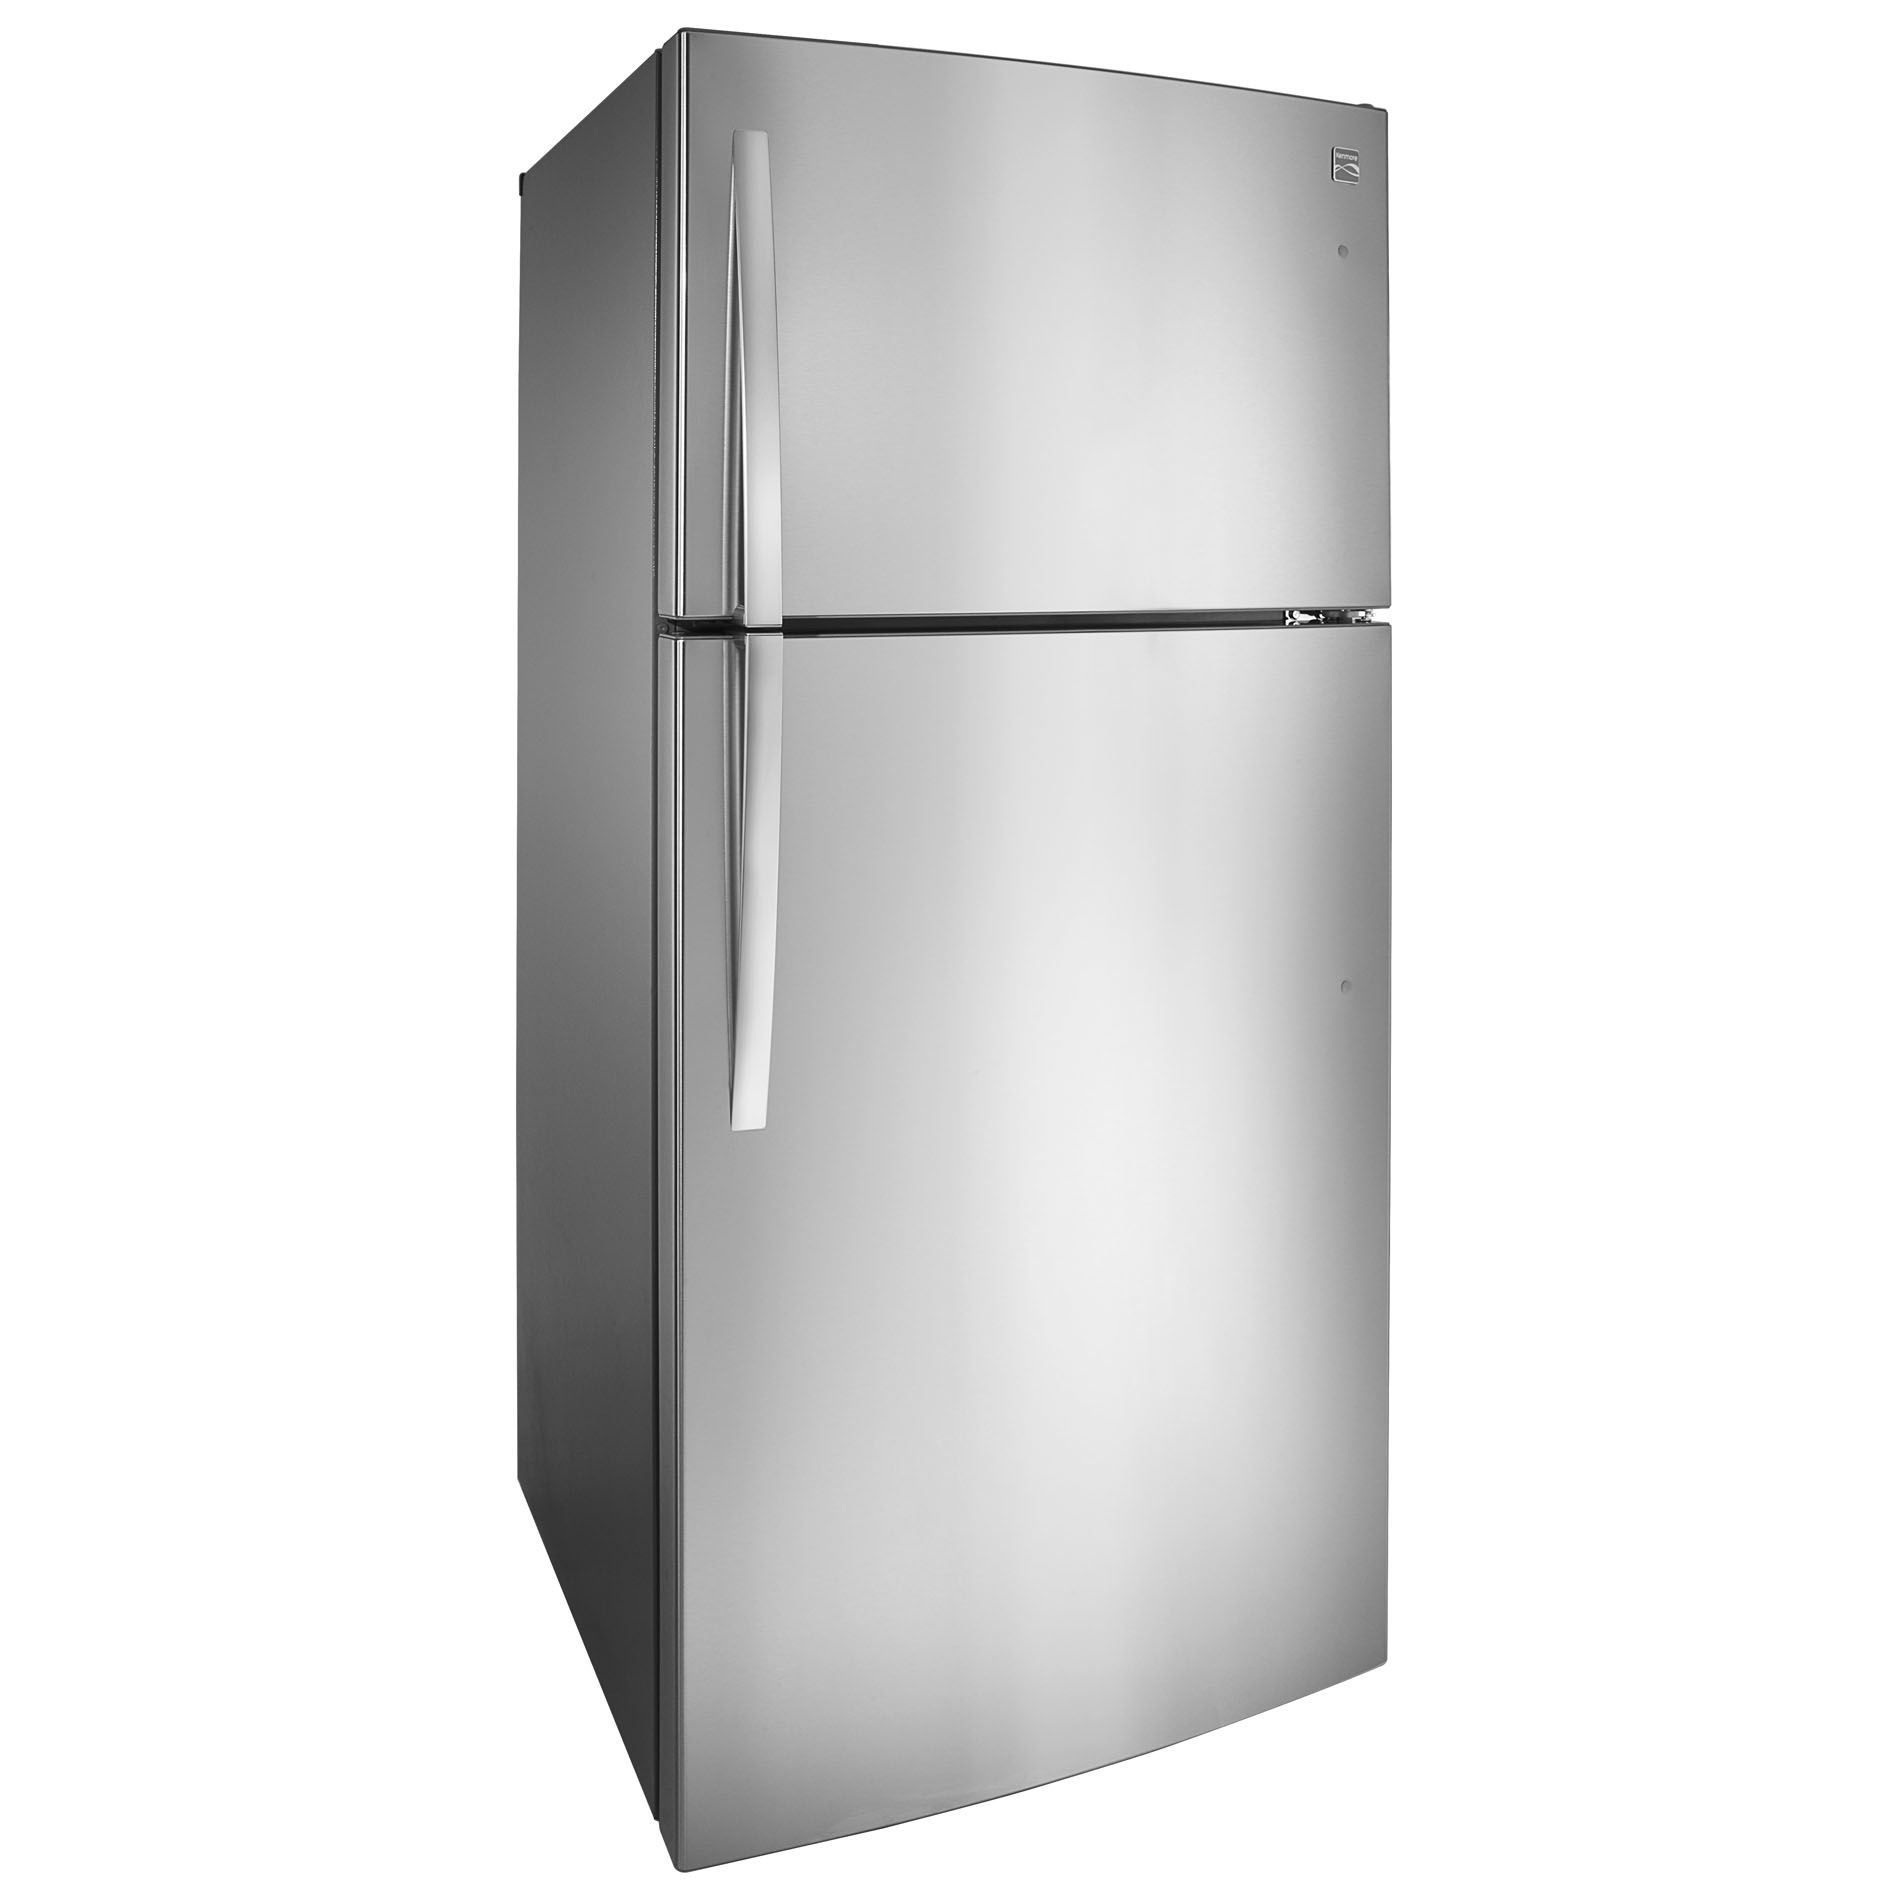 Kenmore 24 cu. ft. Top-Freezer Refrigerator w/ Icemaker - Stainless Steel